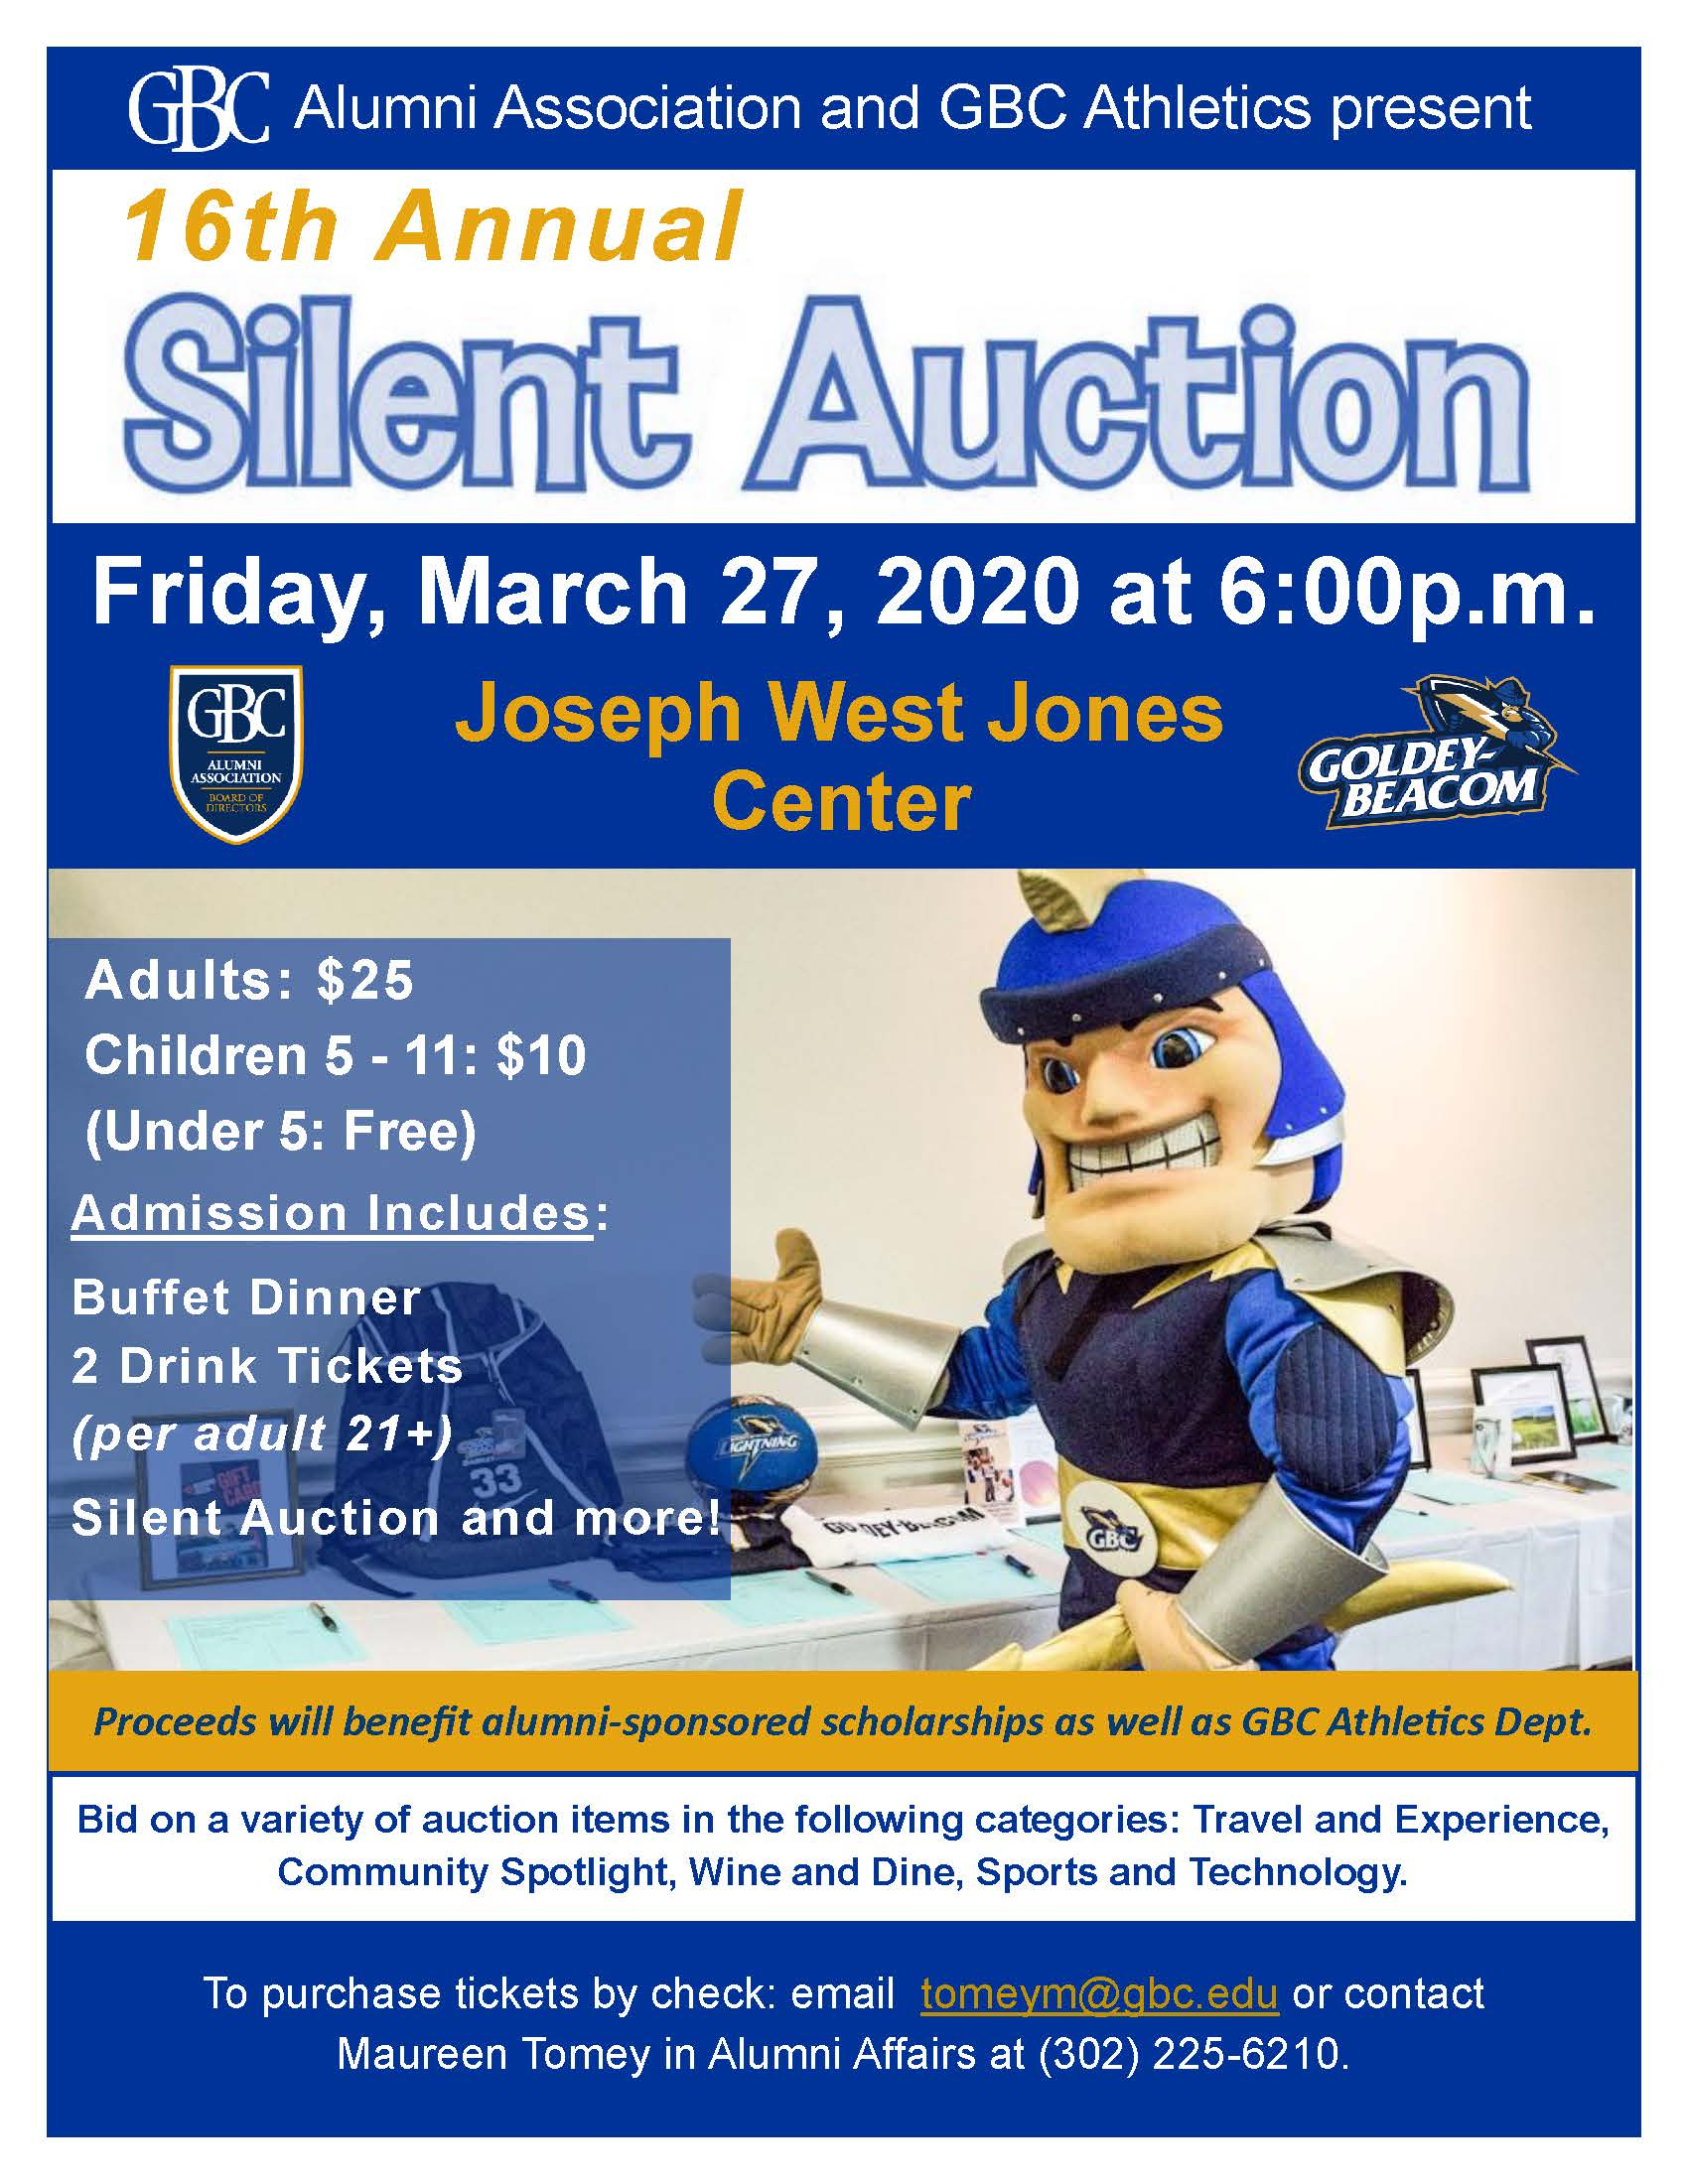 Silent Auction 2020 flyer